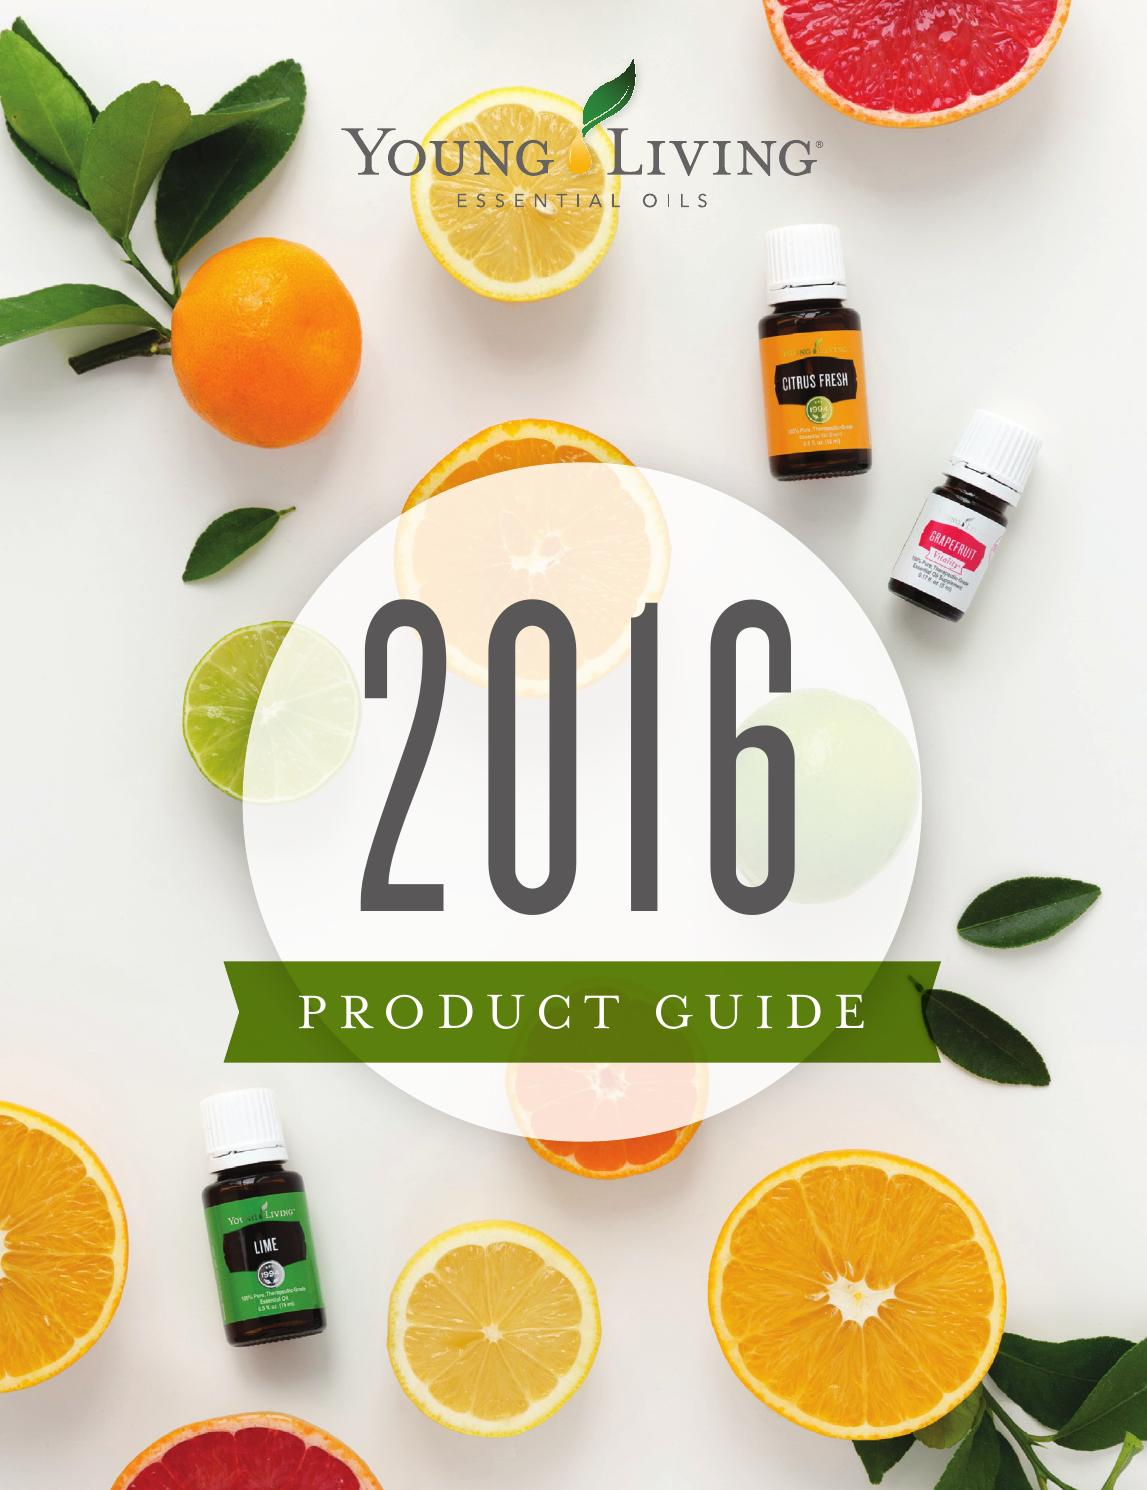 2016 Product Guide V 1 By Young Living Essential Oils Issuu